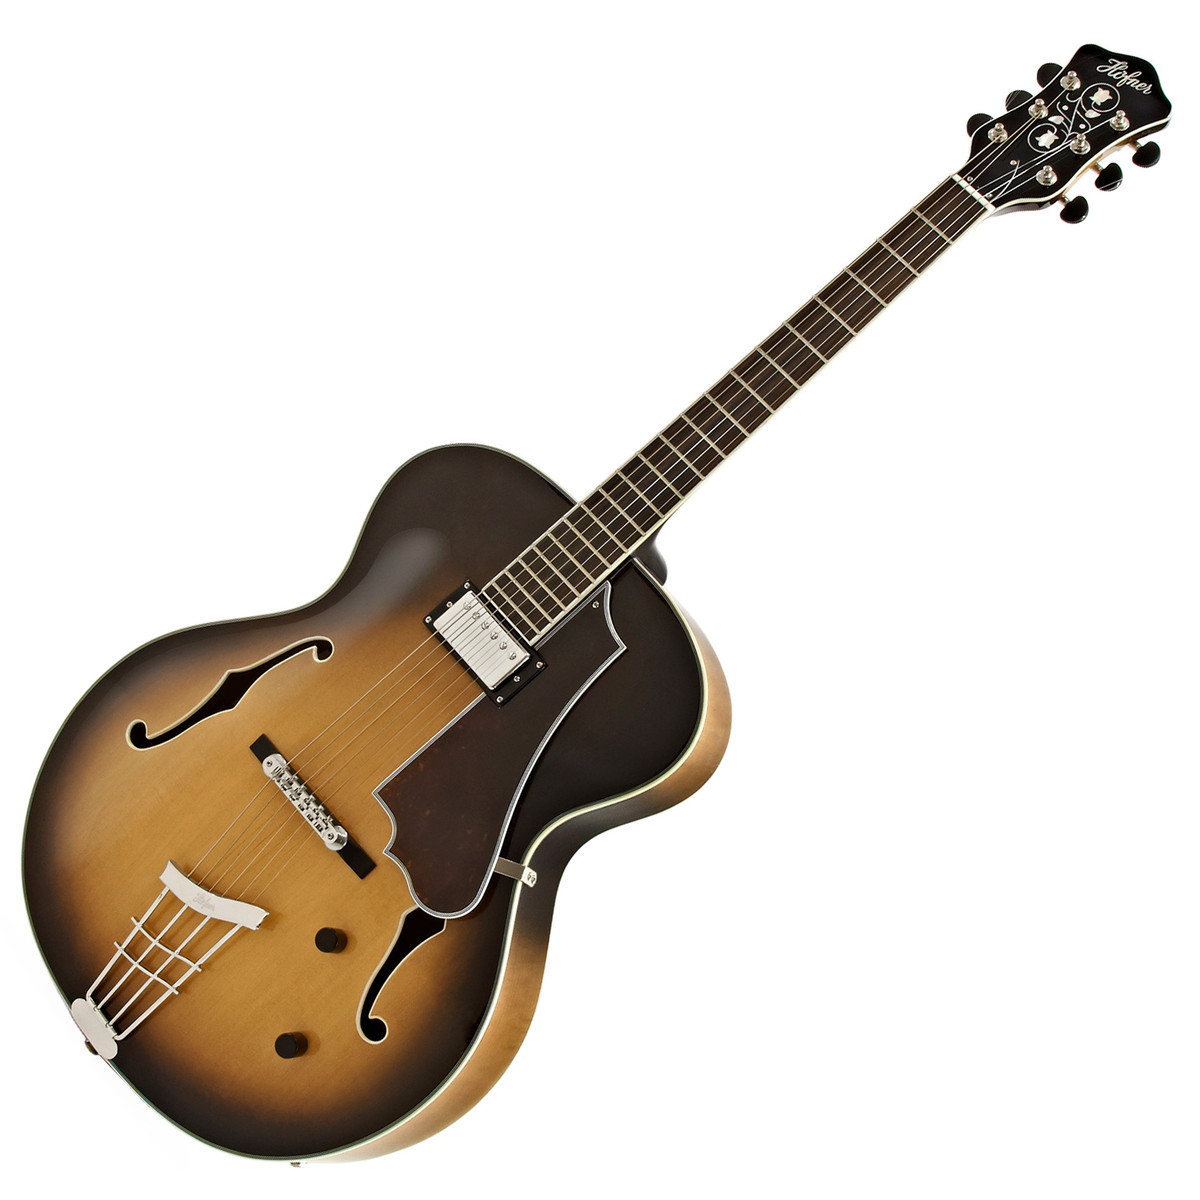 hofner hct jazz electric guitar single pickup sunburst nearly new at gear4music. Black Bedroom Furniture Sets. Home Design Ideas